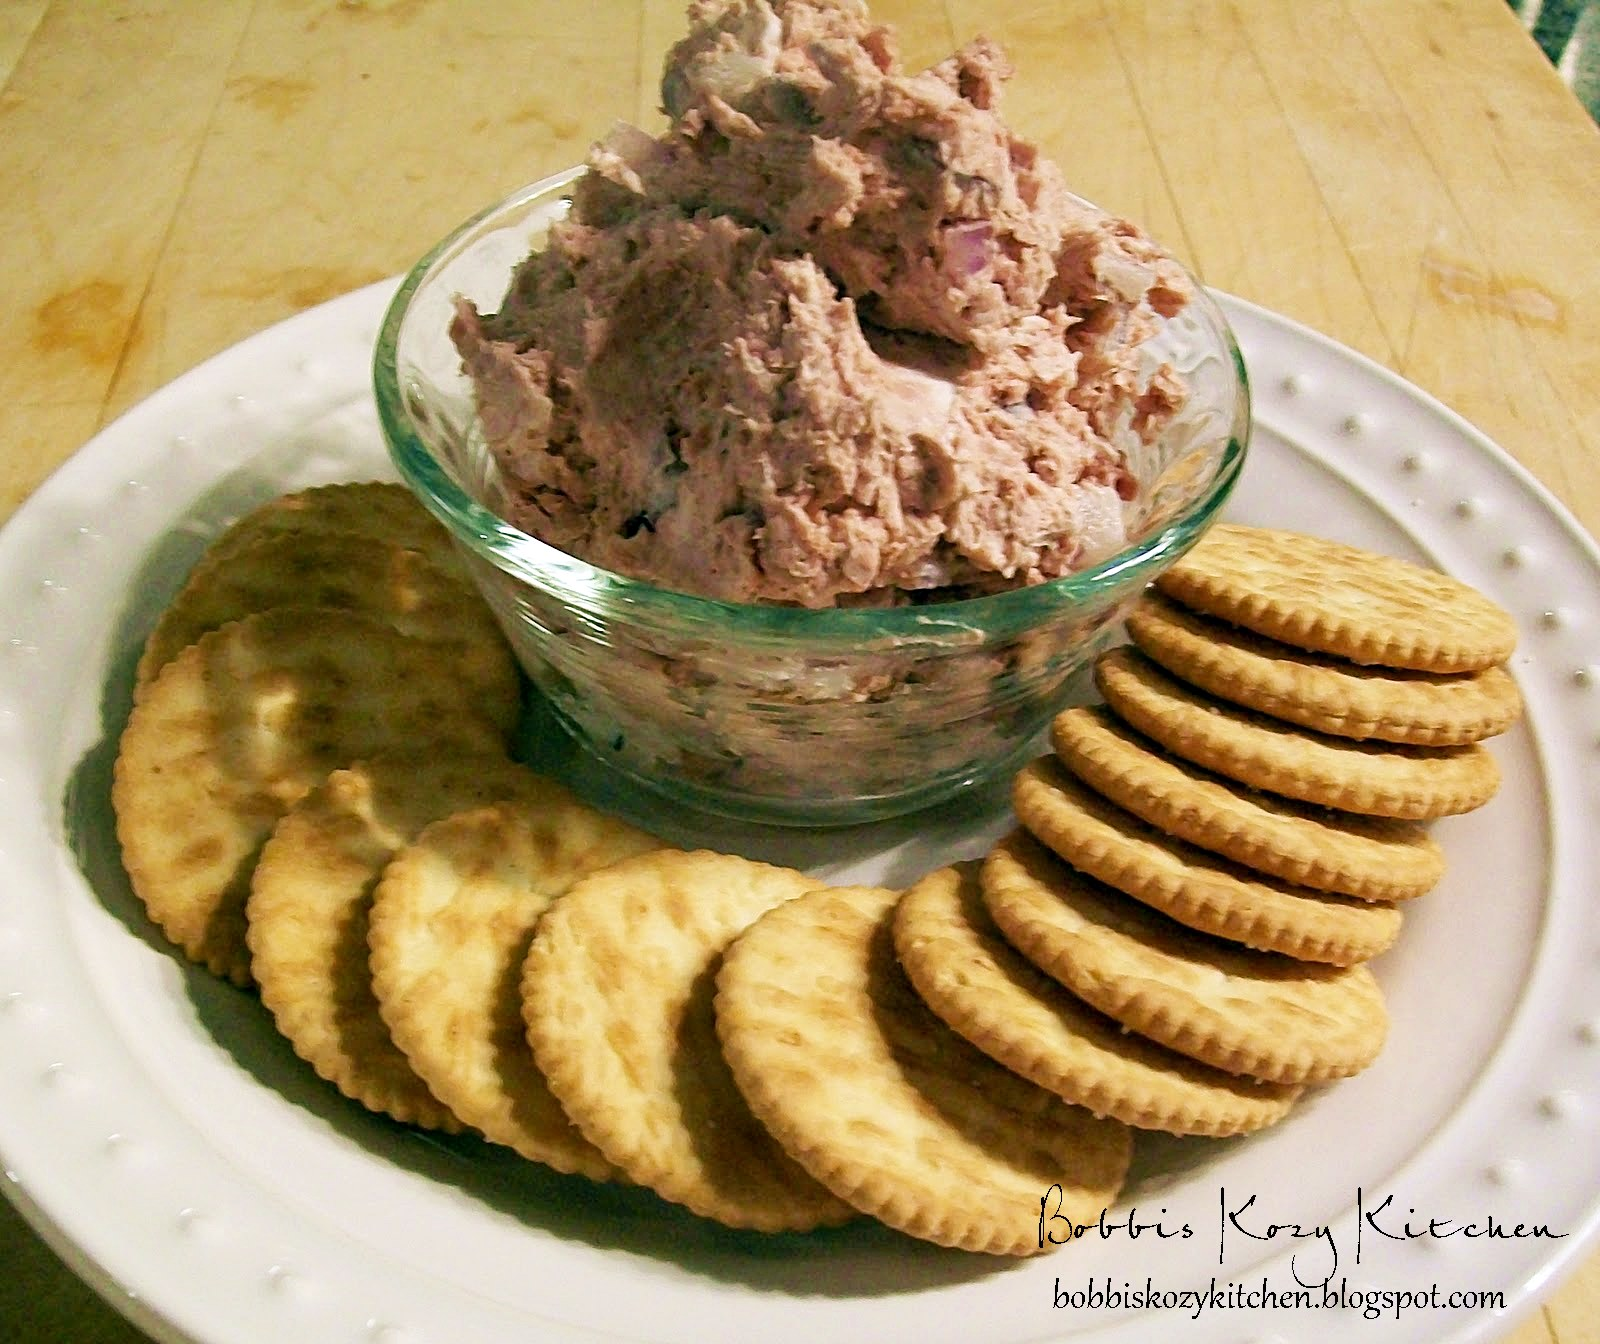 Before And After Merging Two Rooms Has Created A Super: Braunschweiger & Cheese Spread